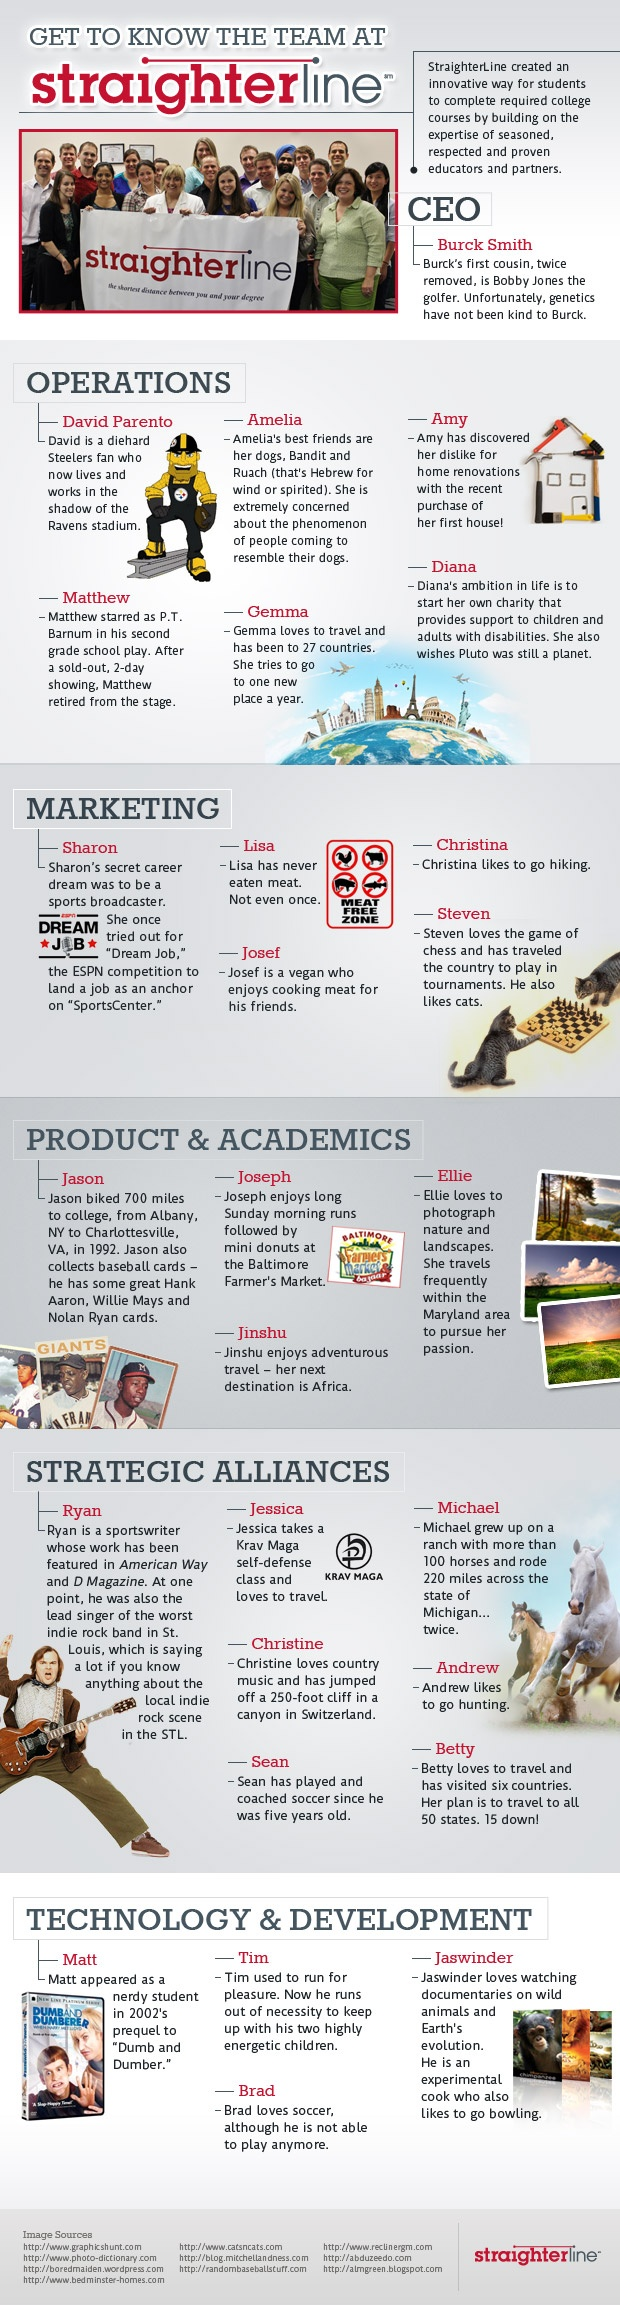 10 best why straighterline images on pinterest college courses about straighterlines team education infographic straighterline fandeluxe Images